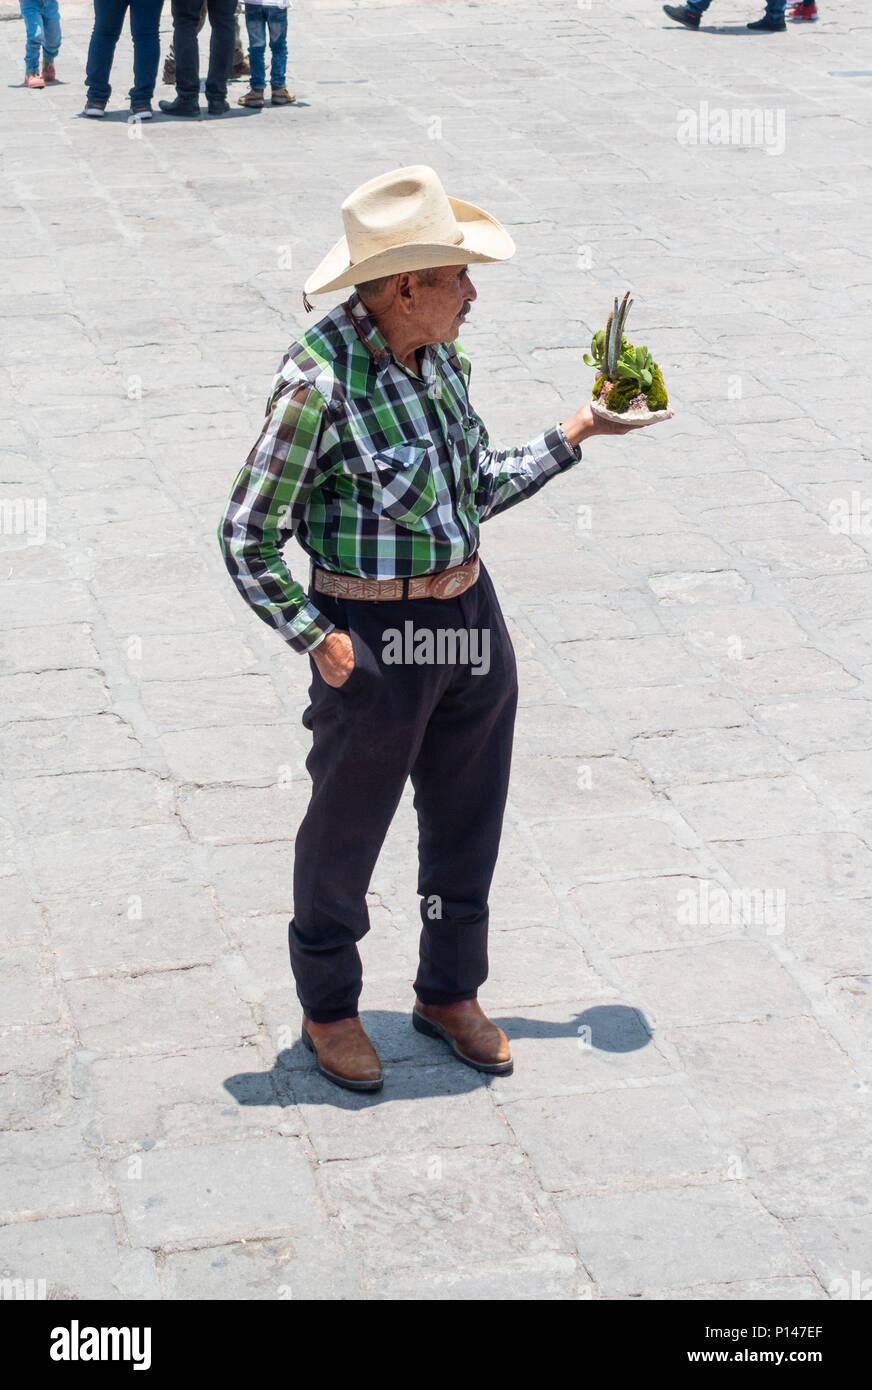 Senior Mexican man offering a cactus plant for sale Stock Photo